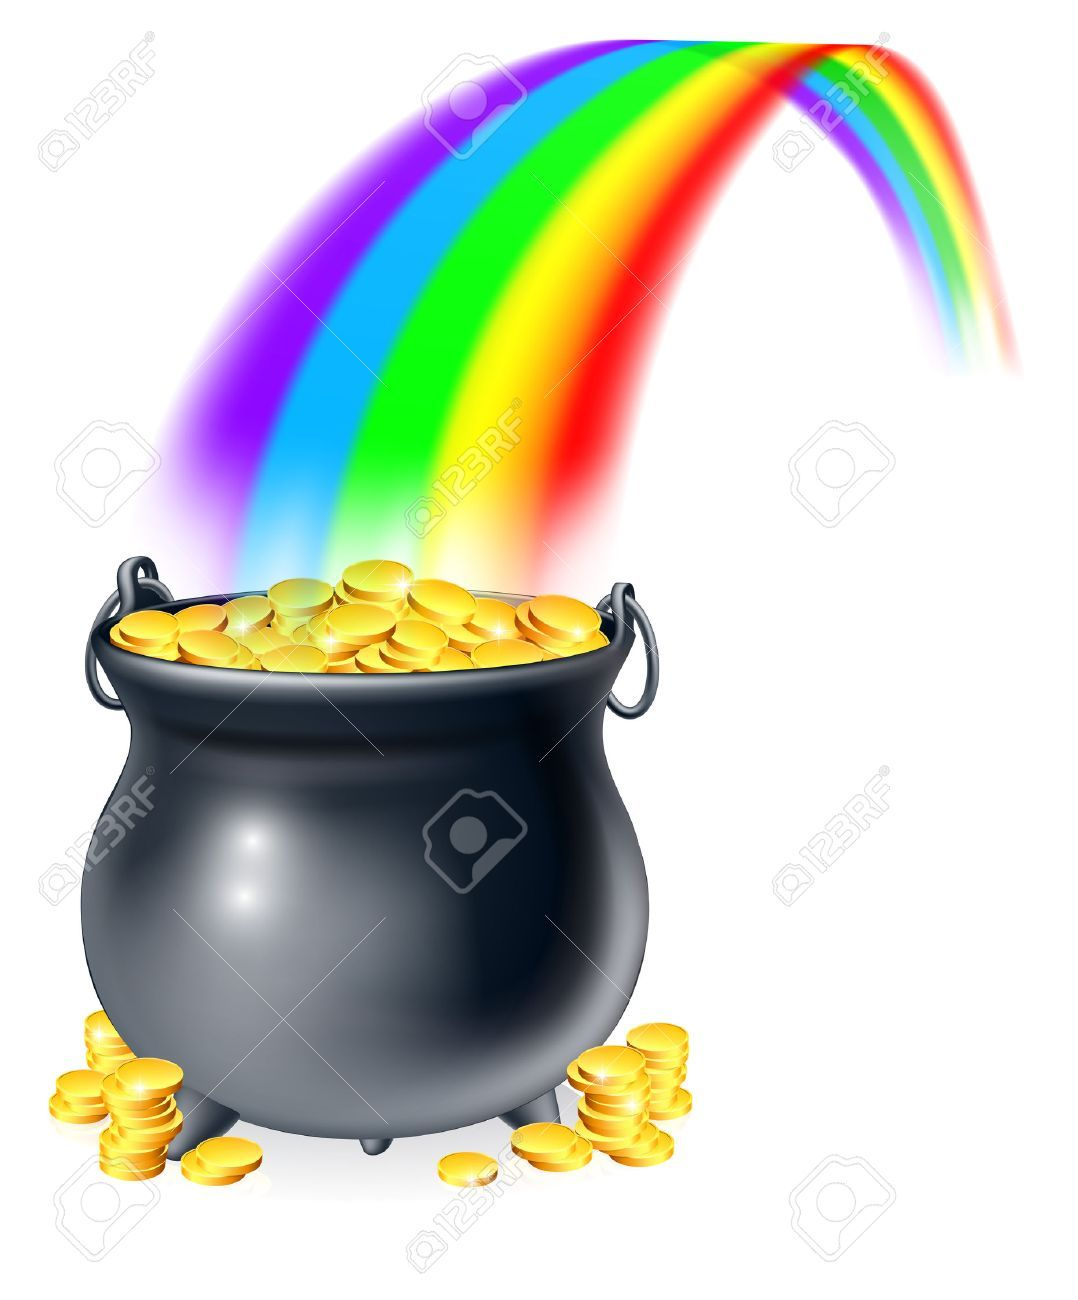 Pot o gold clipart 2 » Clipart Portal.